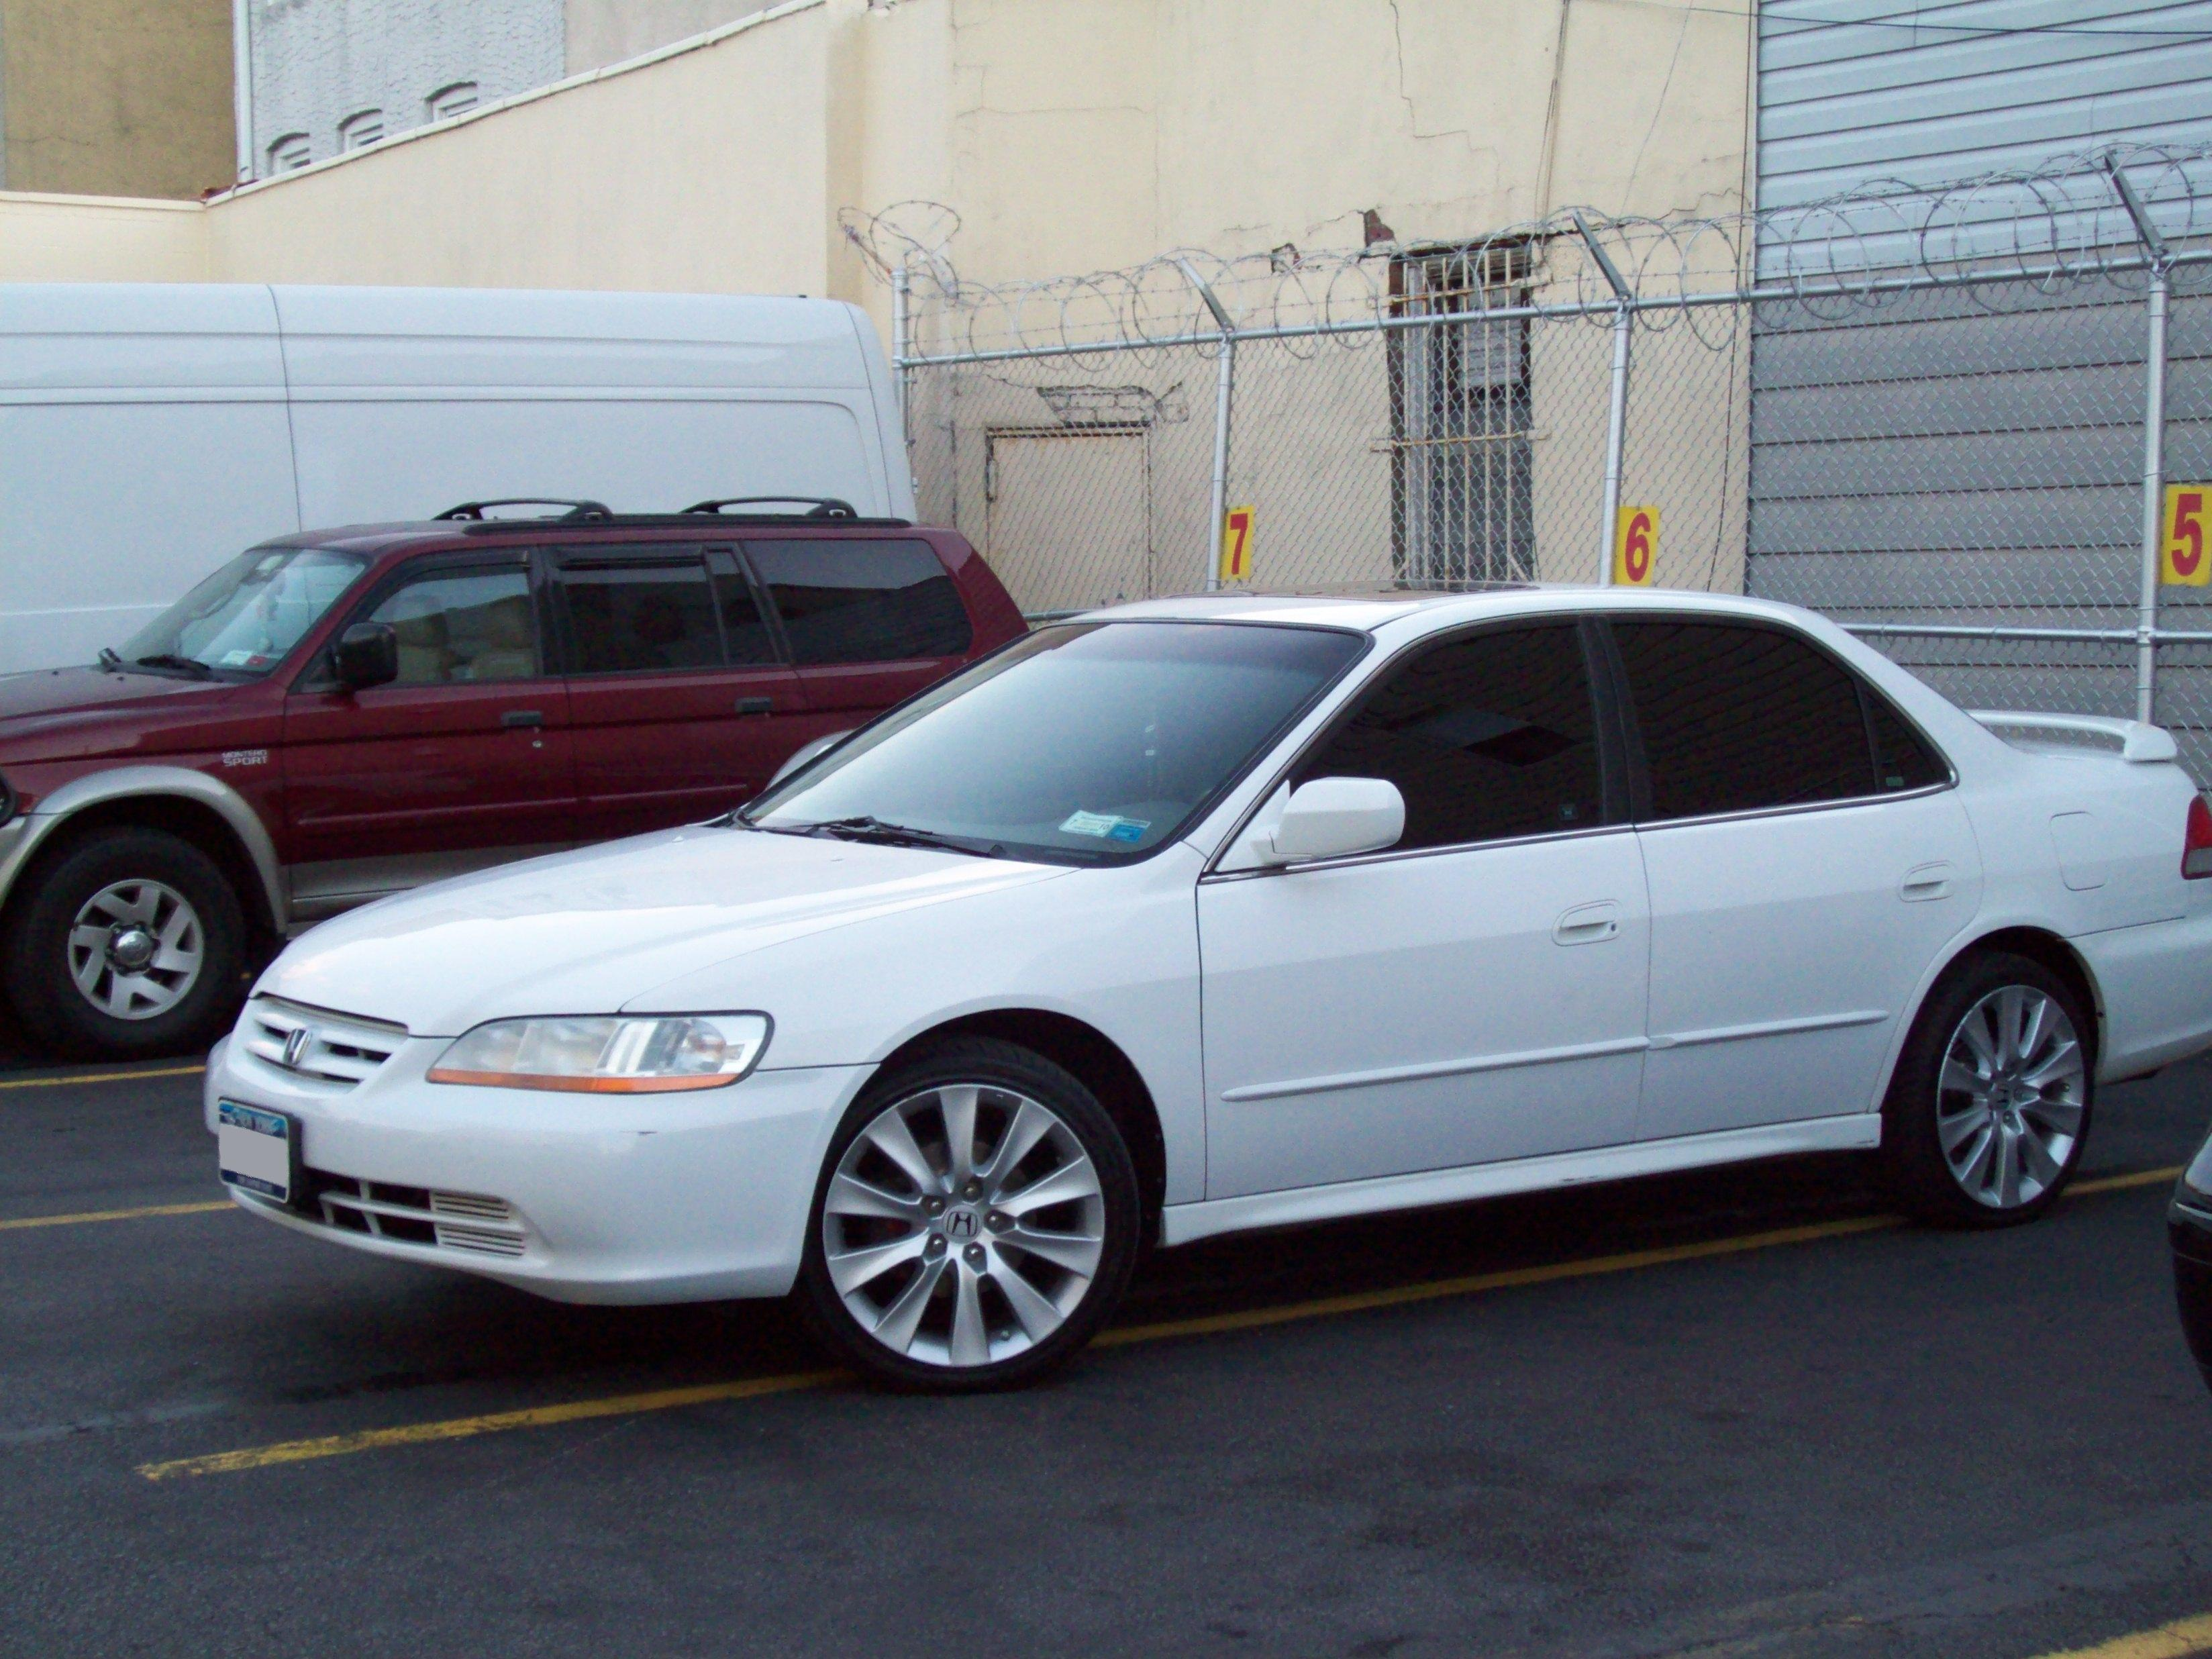 Details Specifications Dimensions Features. Manufacturer: Honda; Model:  Accord